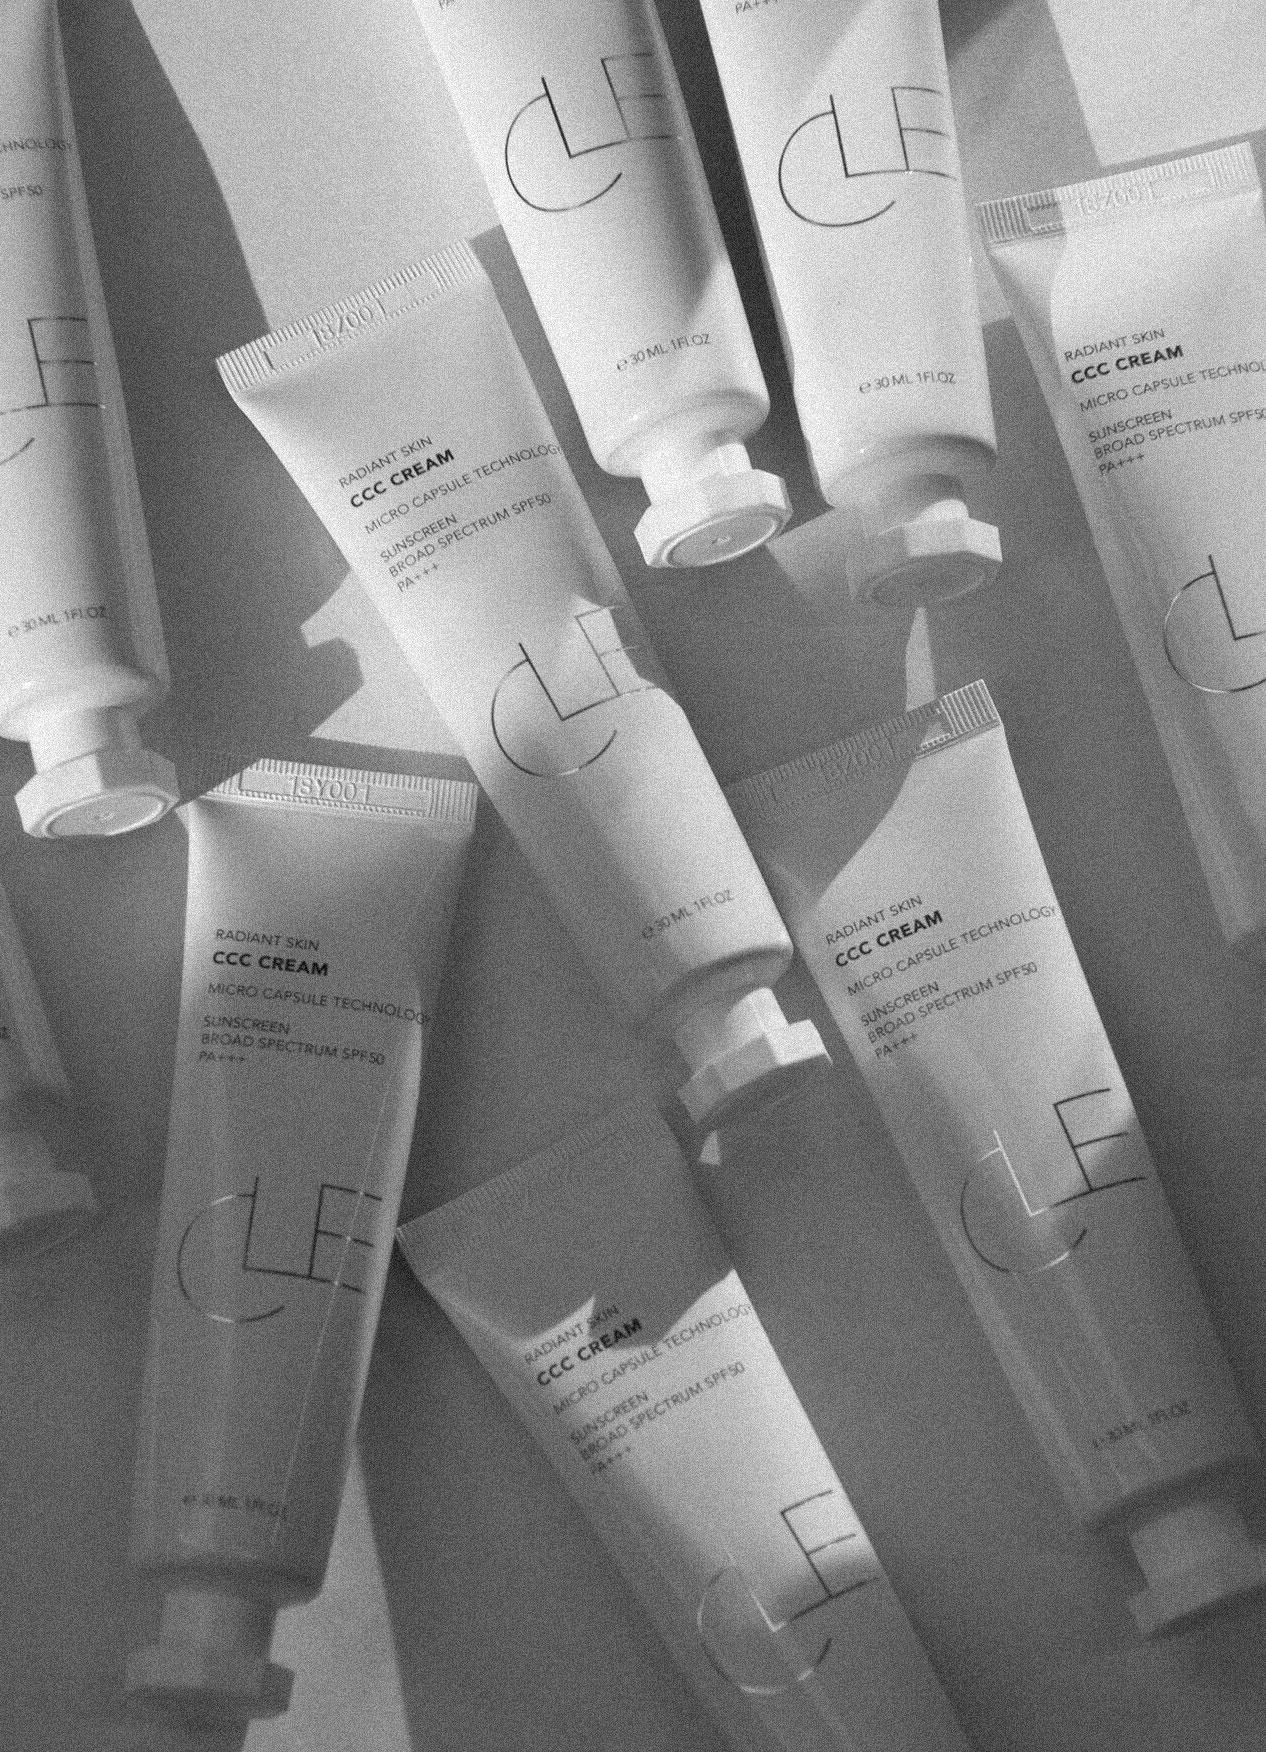 White bottles of Cle's CCC cream Korean sunscreen and skincare